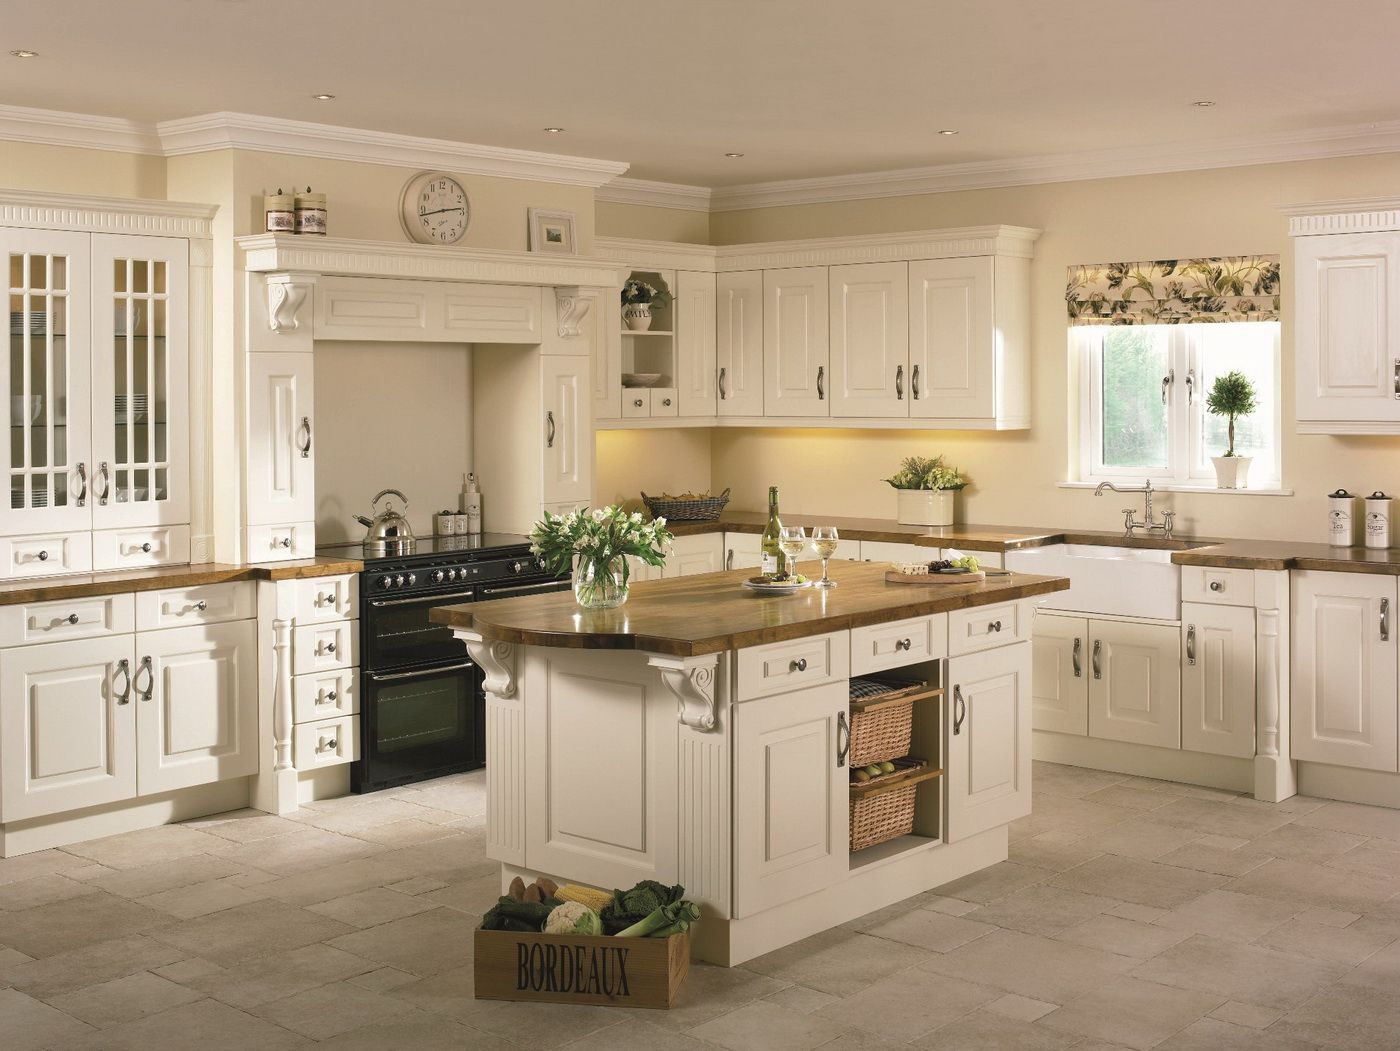 Beautiful Kitchen Cream Cupboards With Wooden Work Top Country Kitchen Cabinets Cream Painted Kitchen Cabinets Classic Kitchens